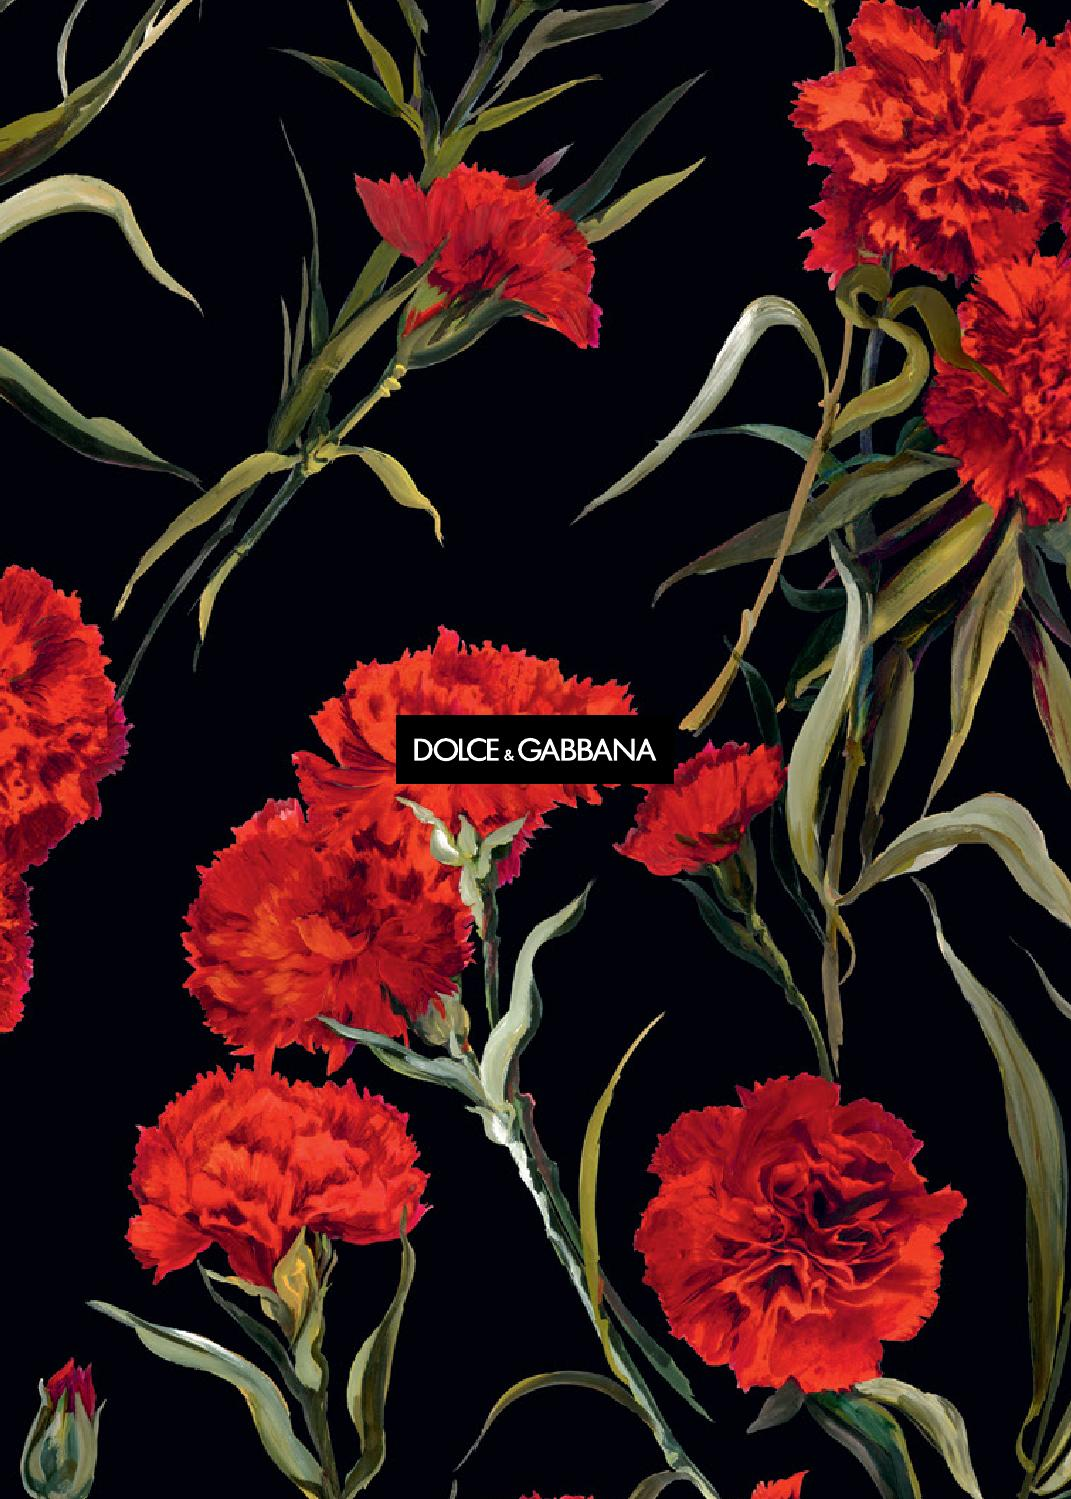 Gucci Wallpaper Iphone 6 Cruise 2015 Women S Catalogue Volume 1 By Dolce Amp Gabbana